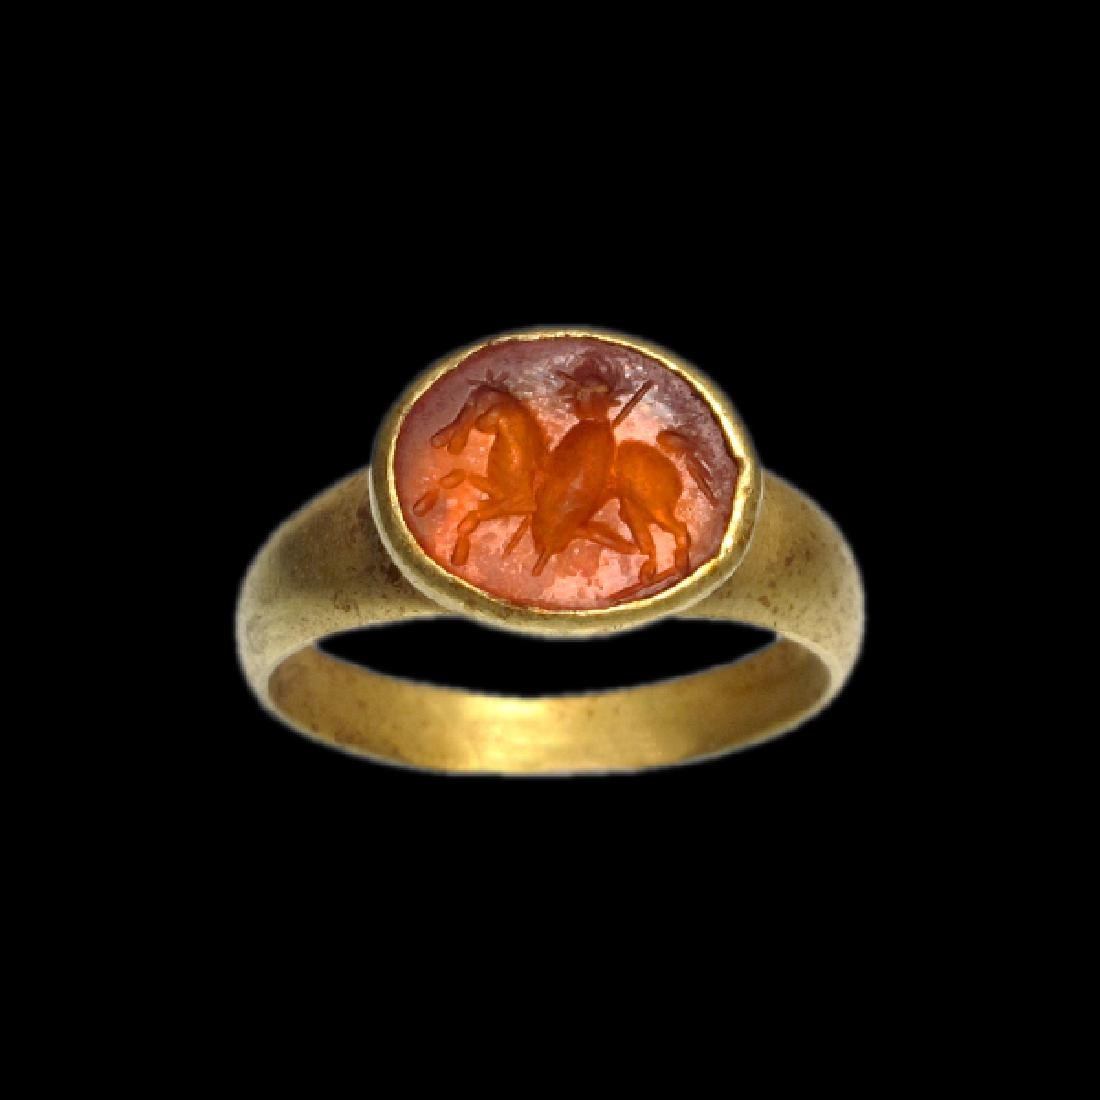 Roman Gold and Cornelian Ring with Rider